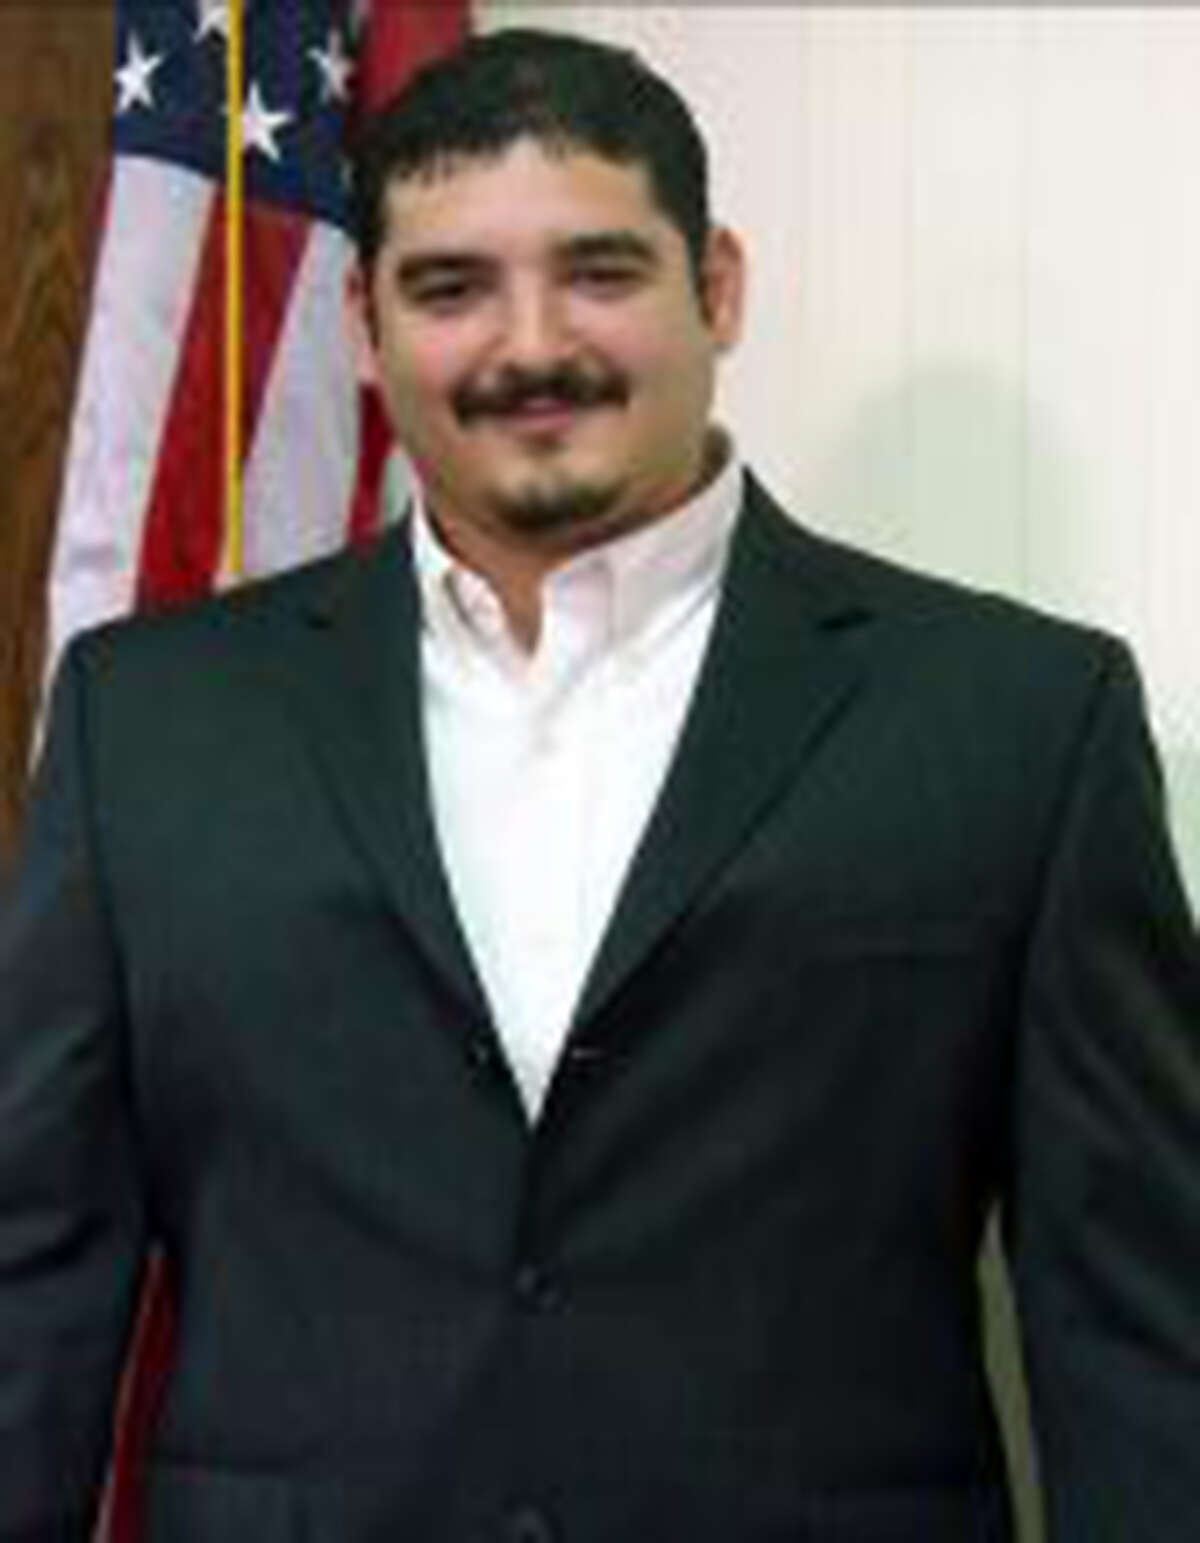 Michael Vela, the president of the Progreso school board, and his brother Omar Vela - the town mayor - were charged Wednesday in a public corruption case. Picured here is Michael Vela.